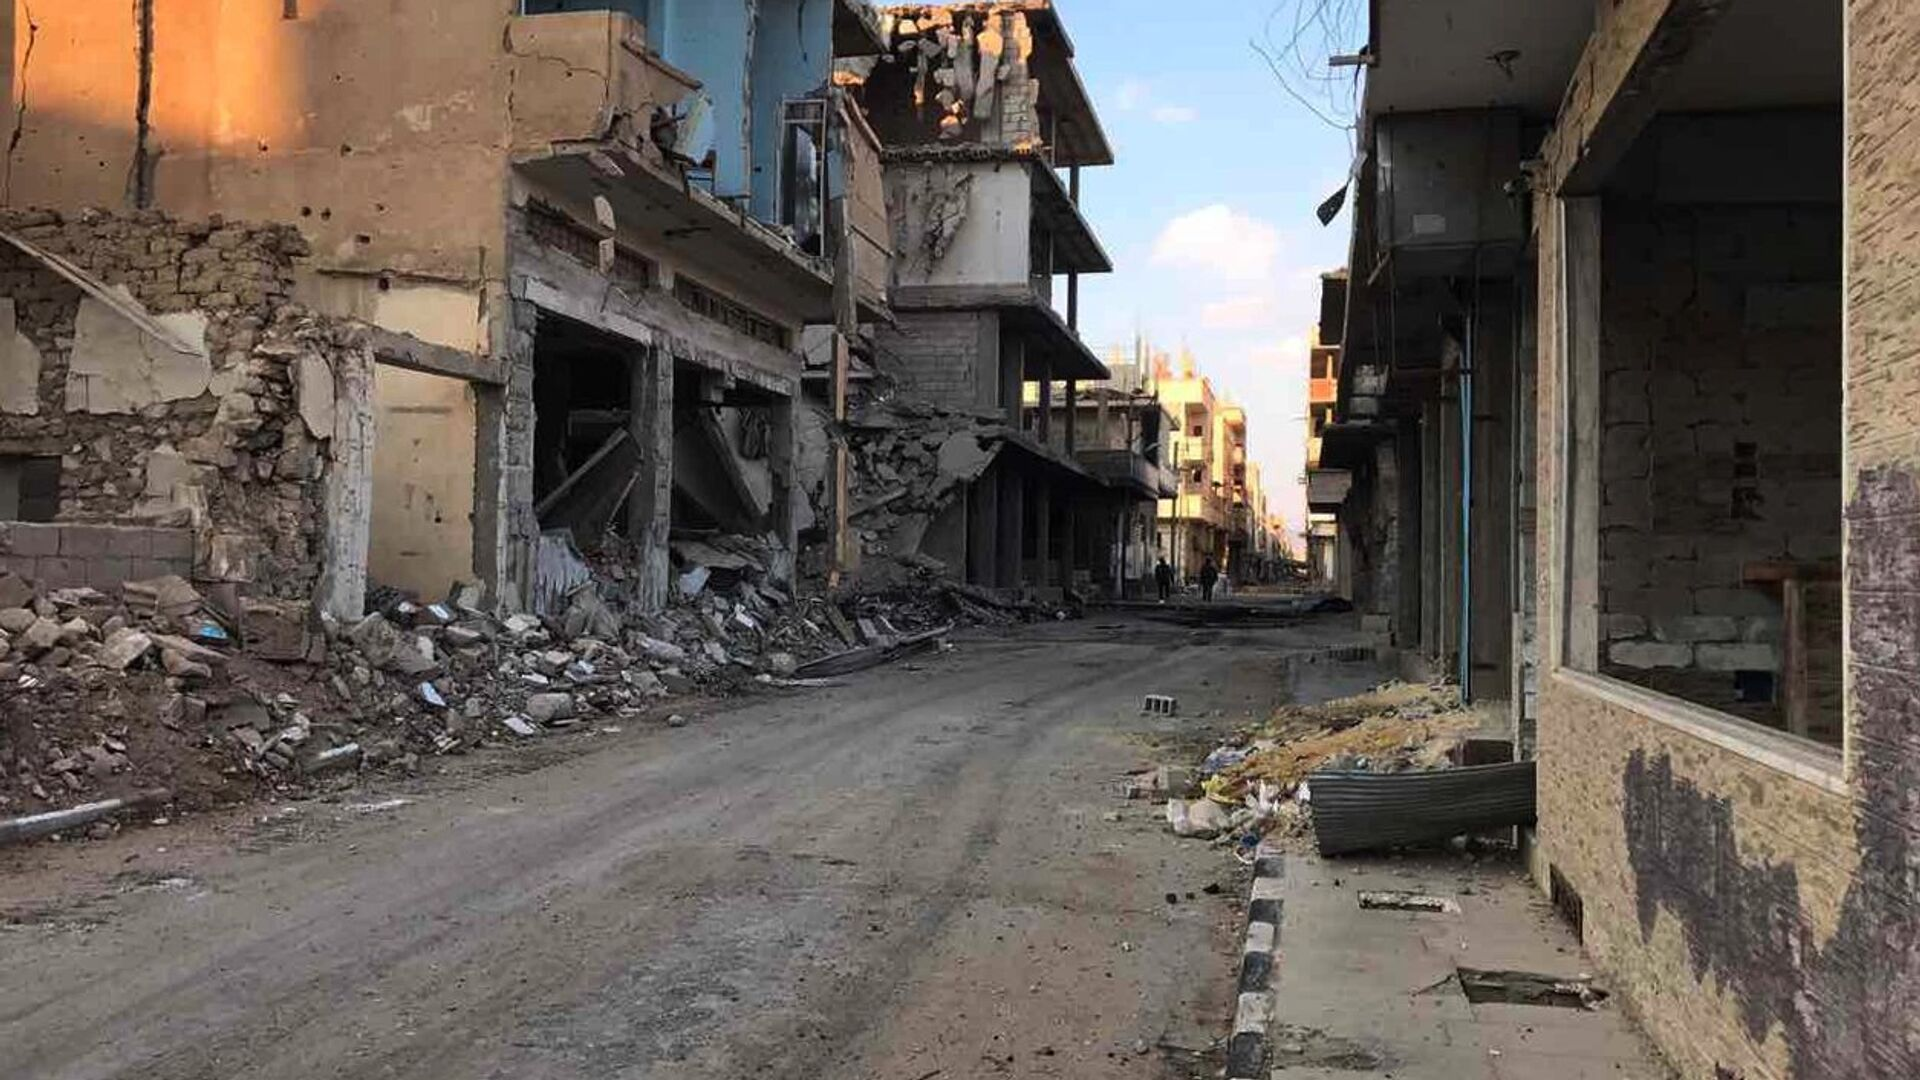 Buildings destroyed during combat activities in the residential part in Homs, Syria. (File) - Sputnik Italia, 1920, 09.10.2021